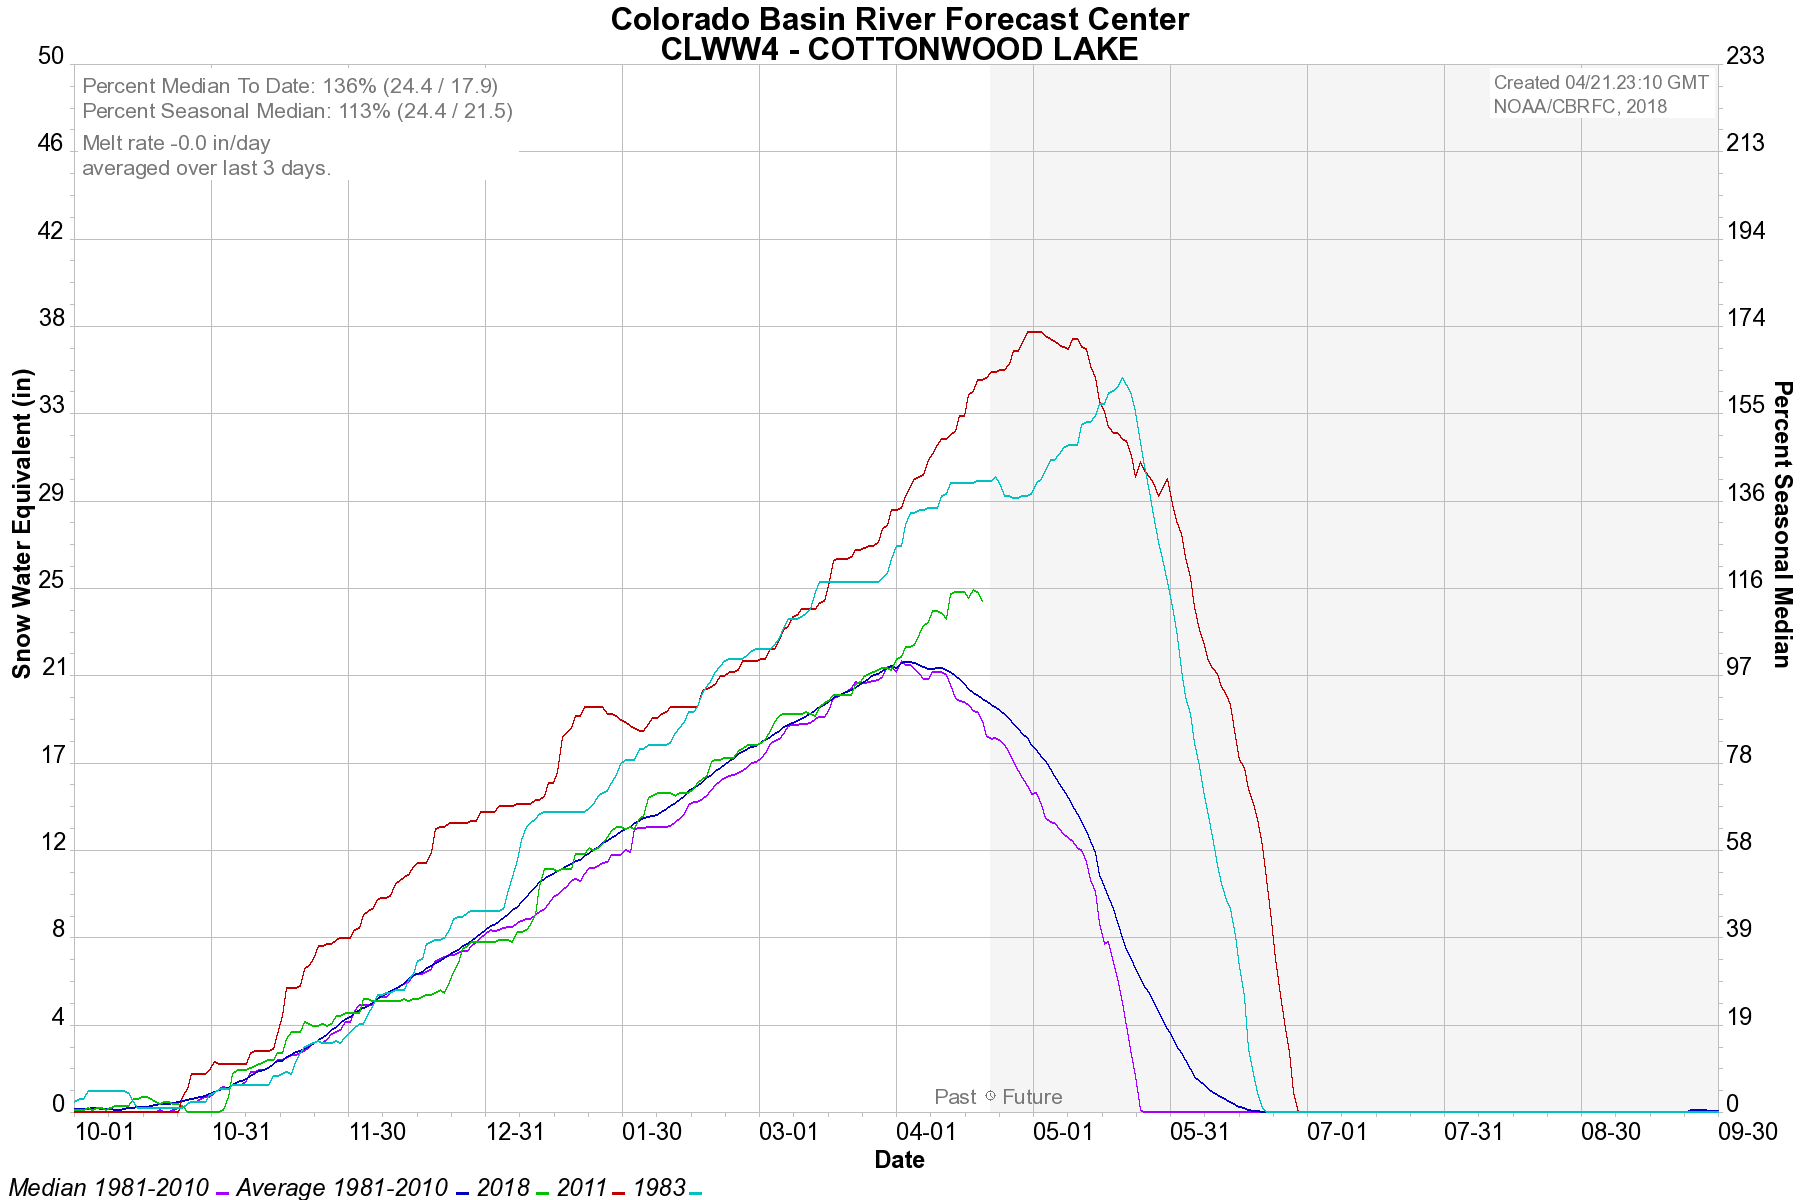 Cottonwood Creek SnoTel Current and Historical Data - Click to Enlarge